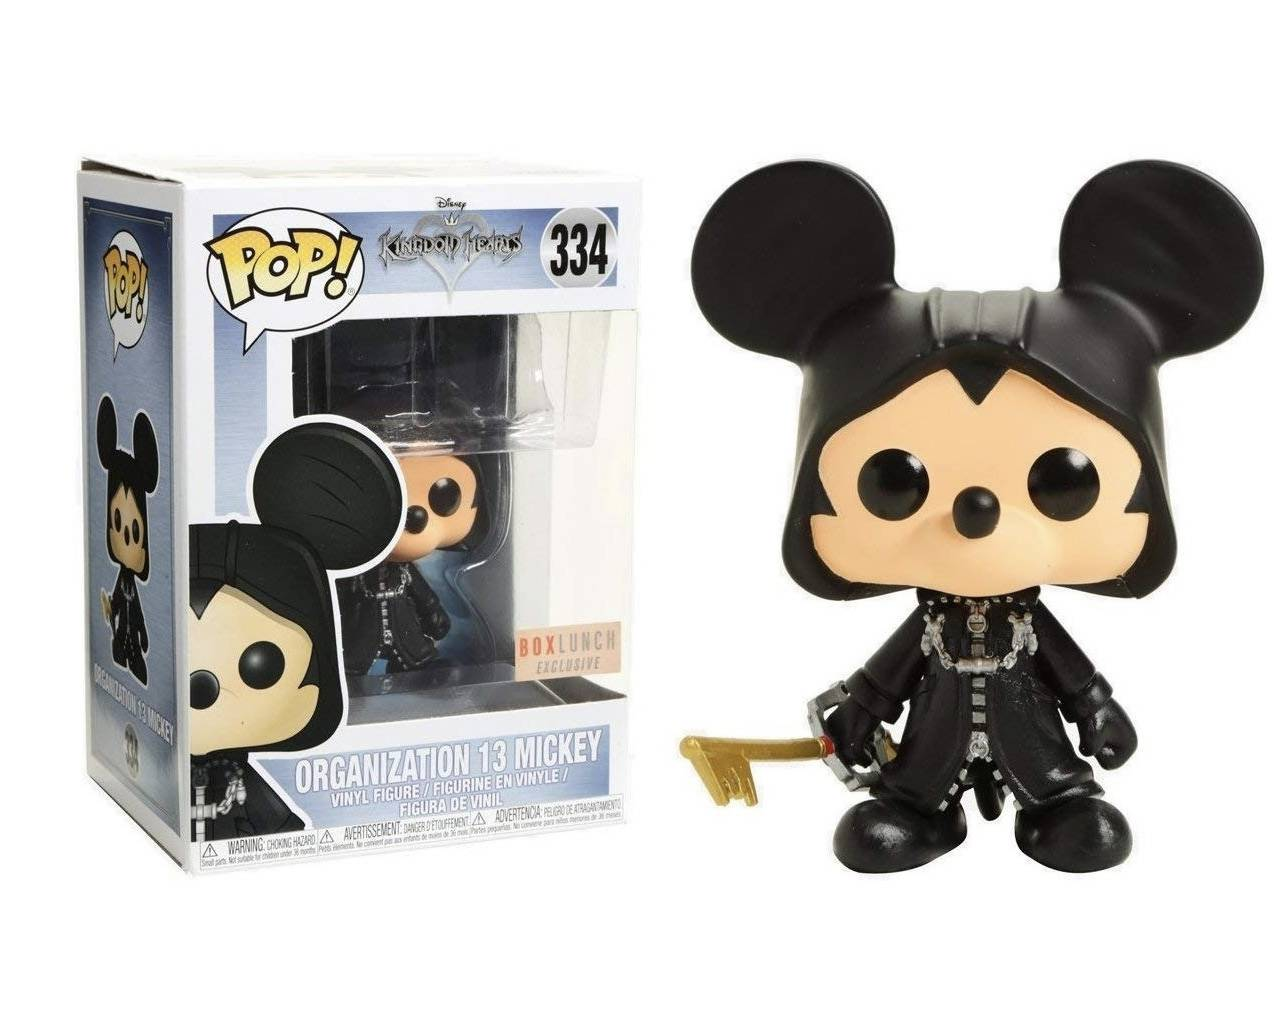 Organization 13 Mickey Pop! Vinyl